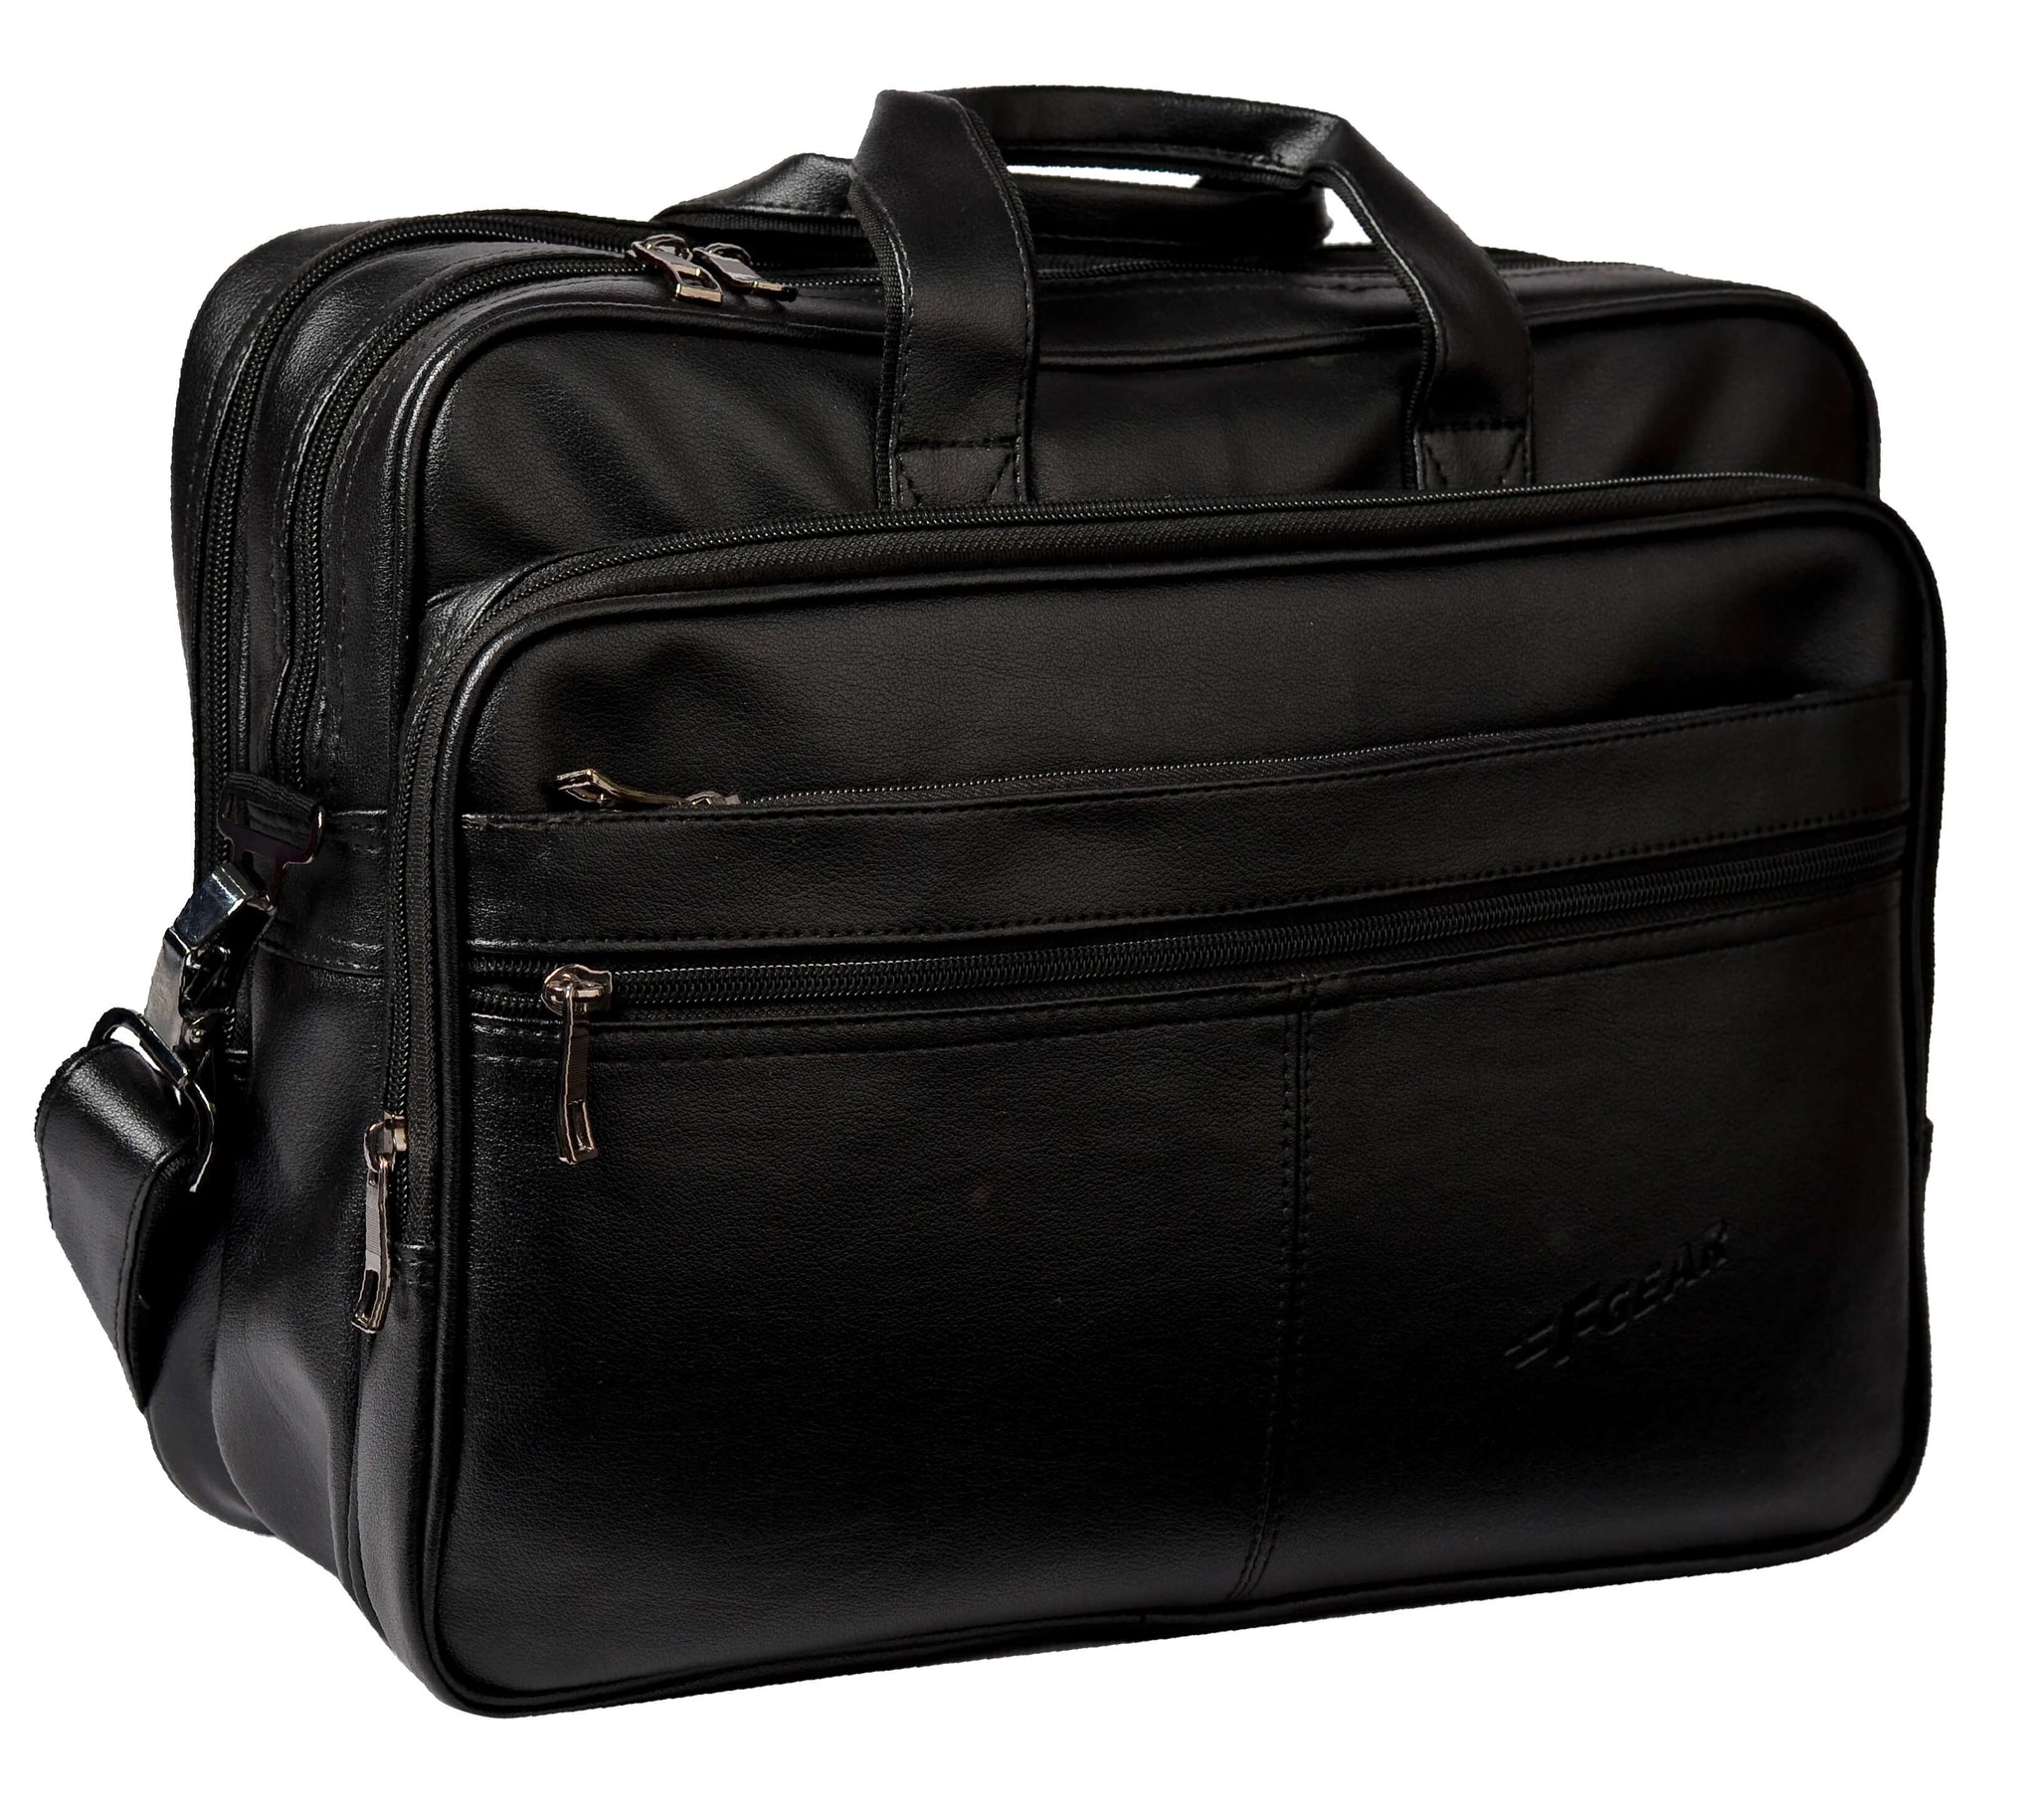 F Gear Hamilton 17 Liters Laptop Bag (Black)